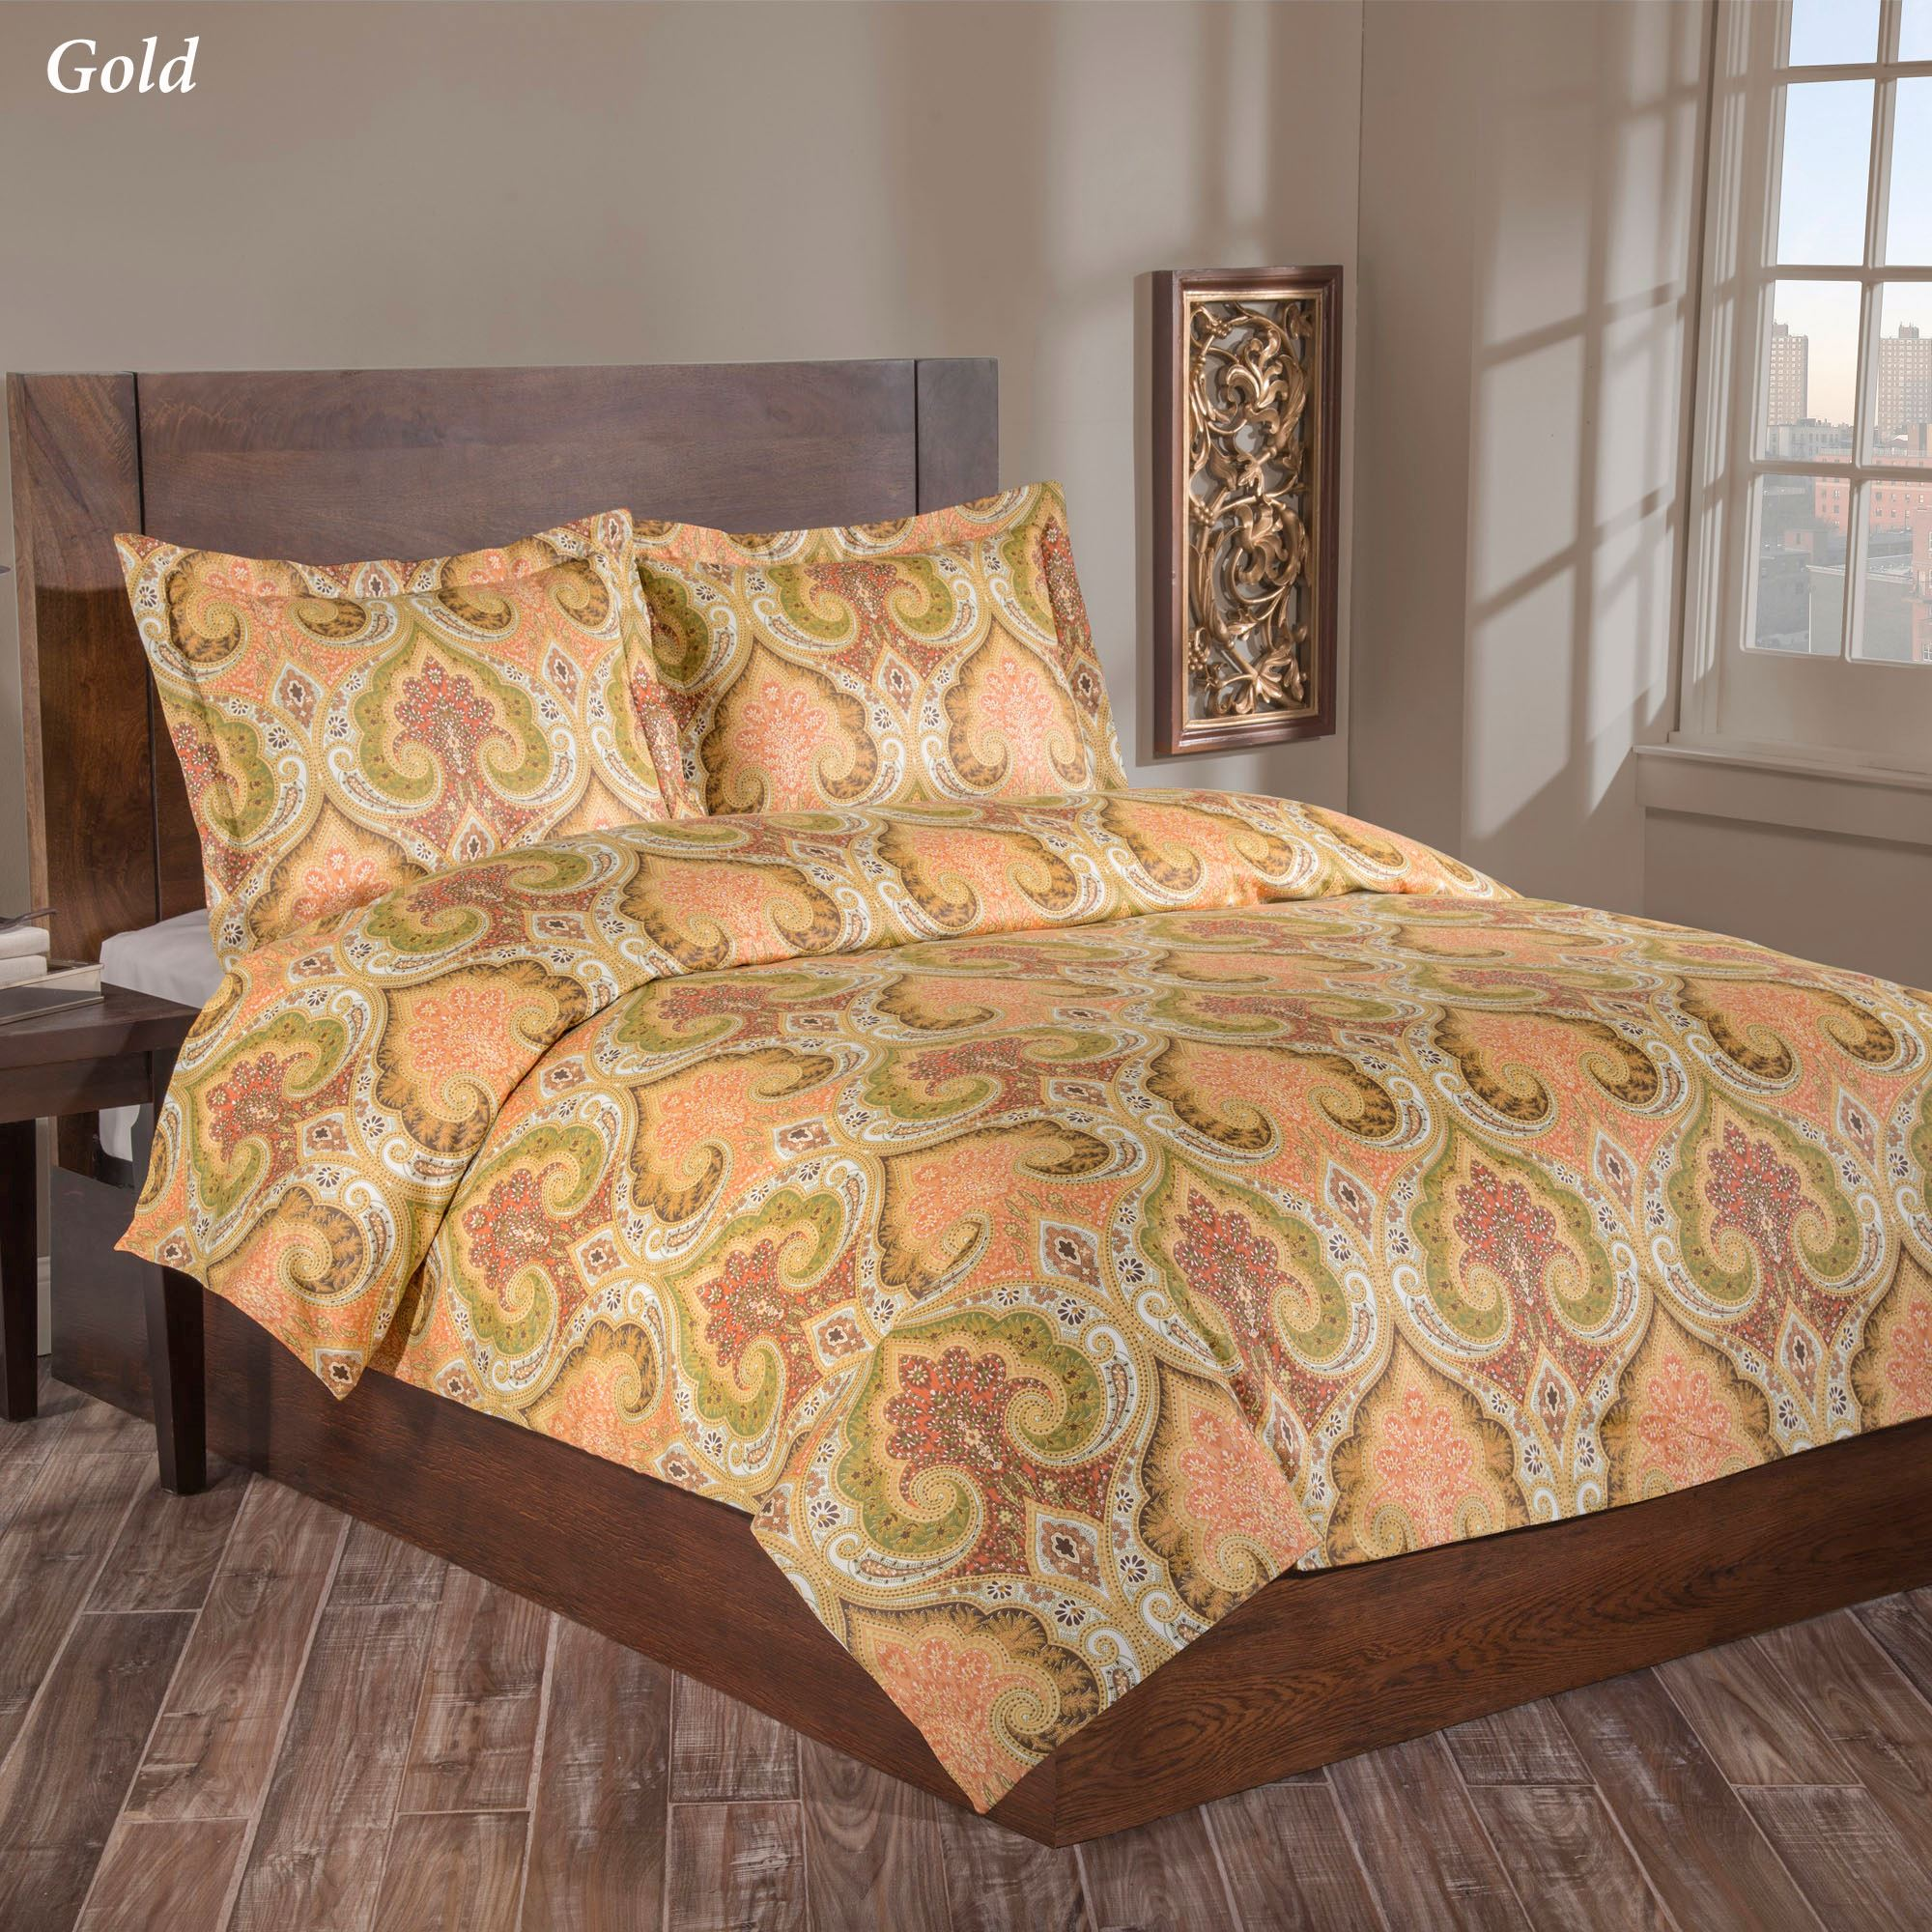 milano medallion duvet cover set - Milano Cover